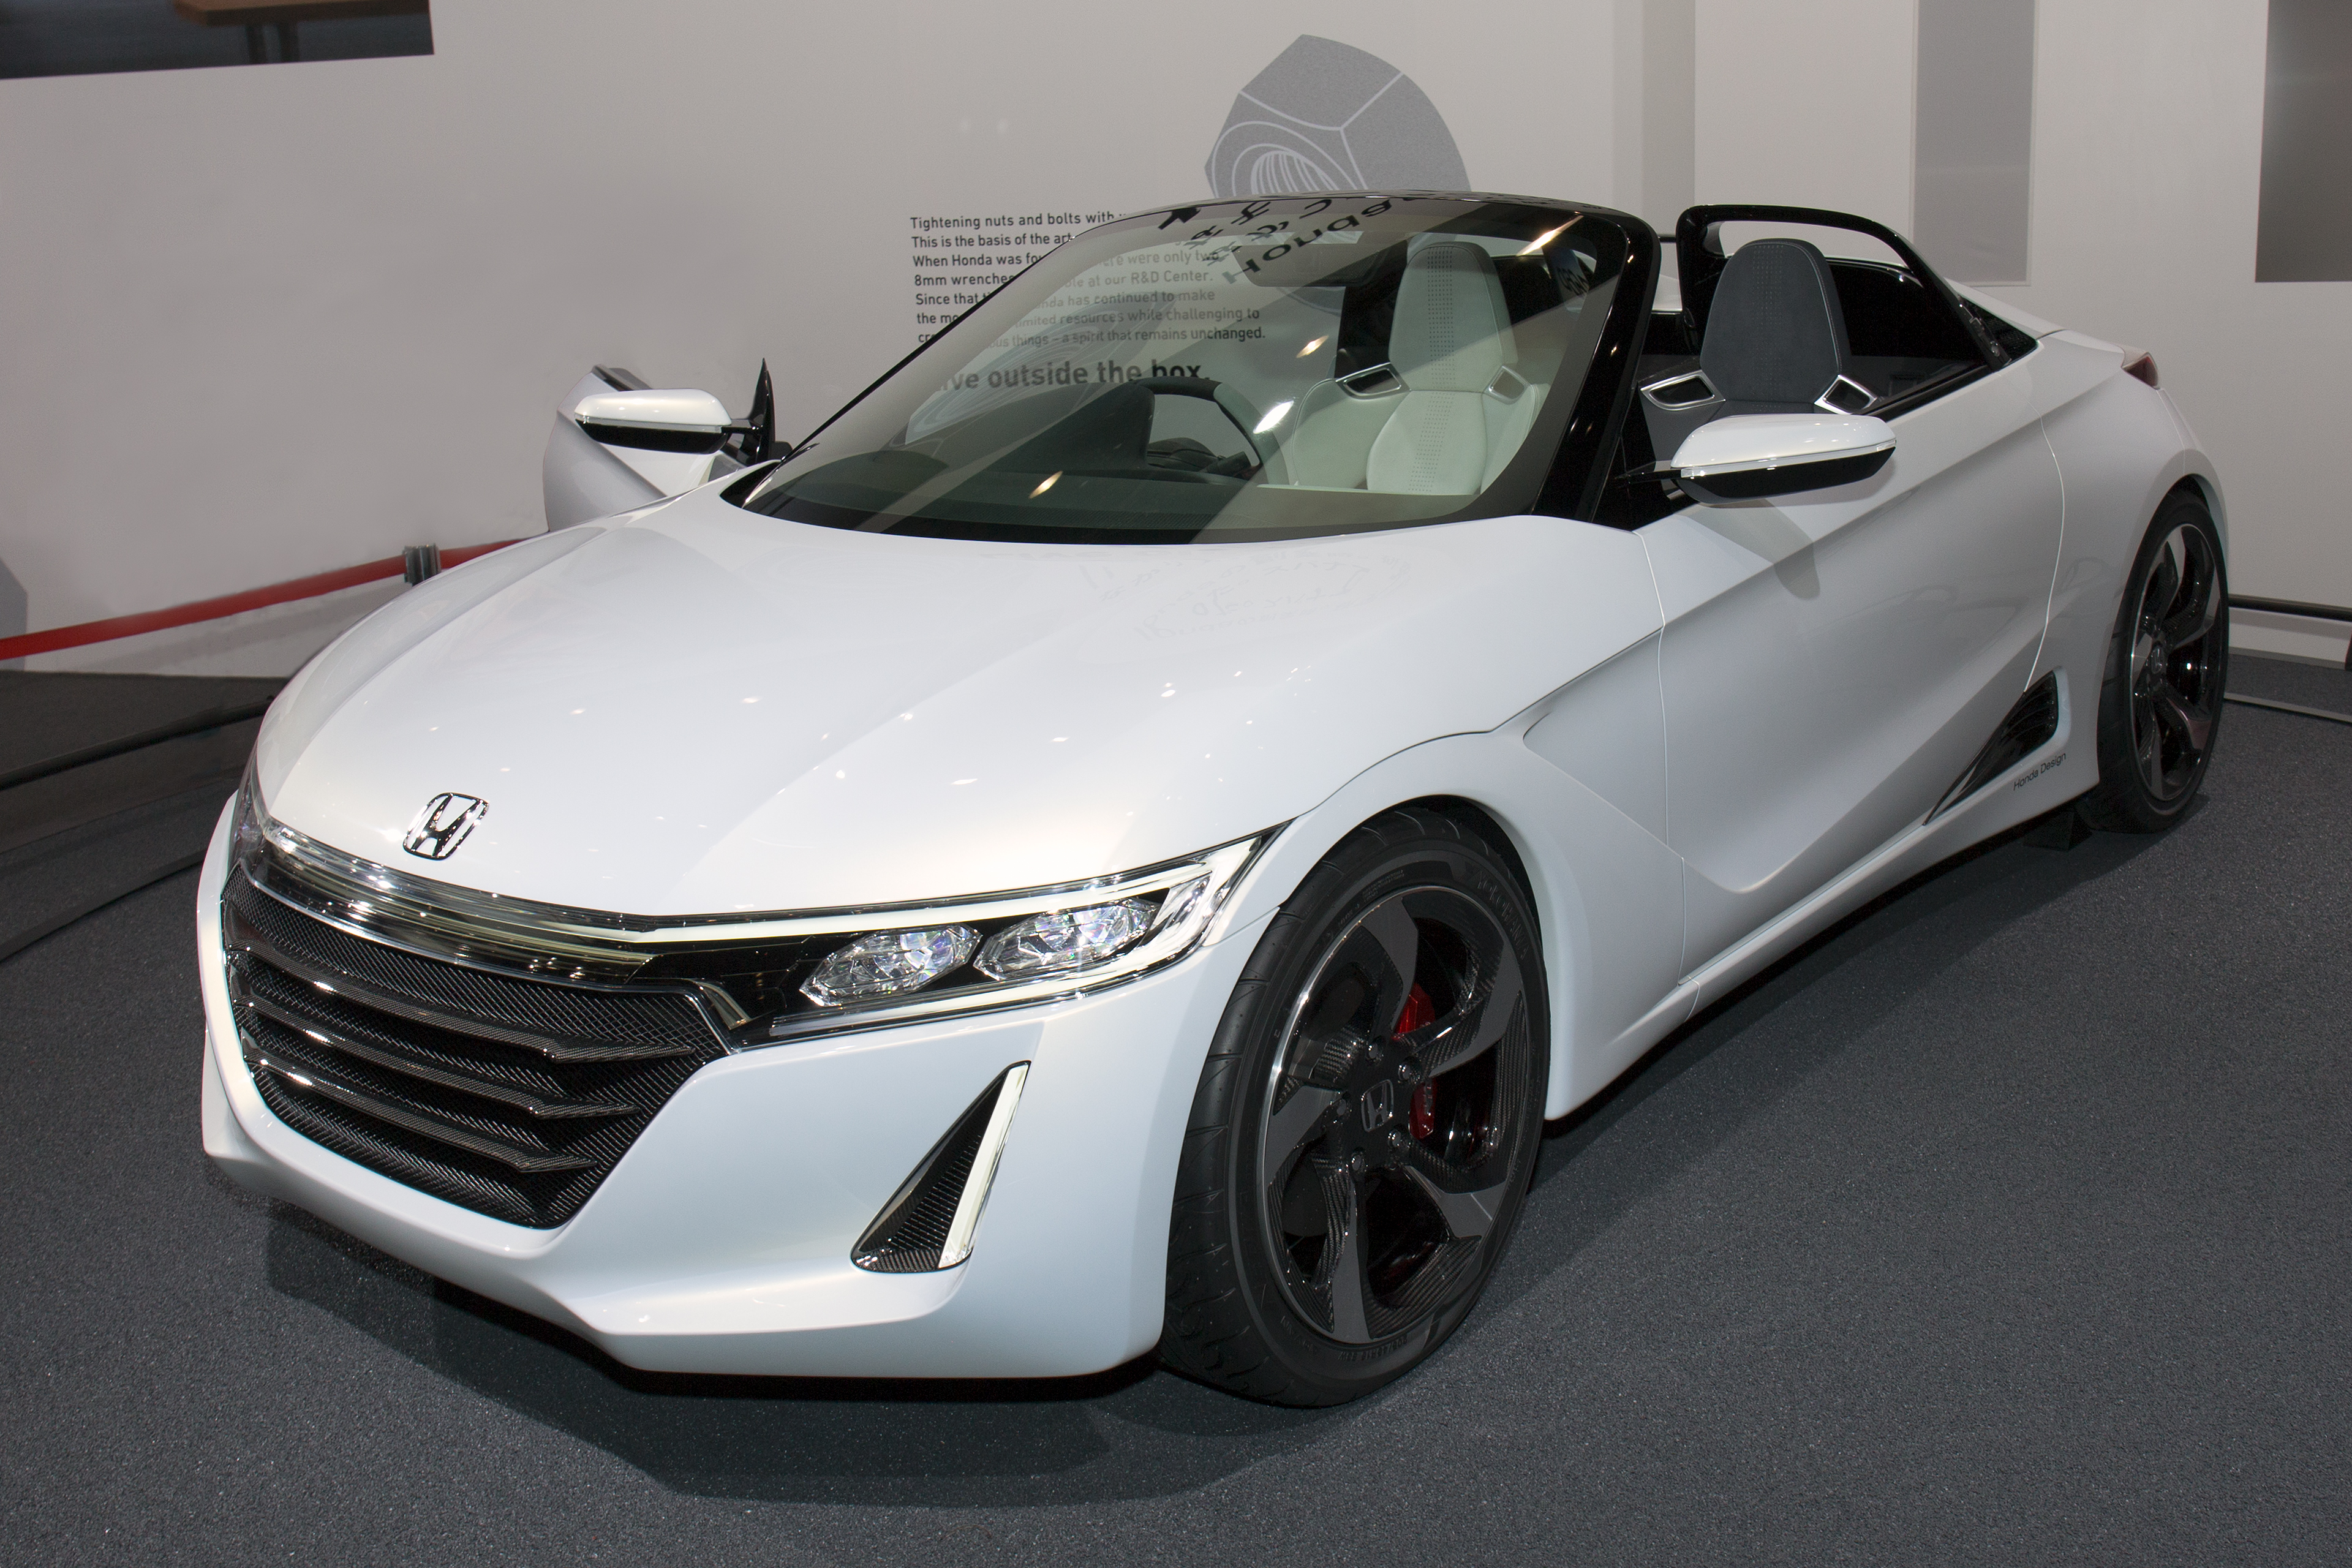 bloomberg meet the 26 year old design prodigy behind the honda s660 roadster